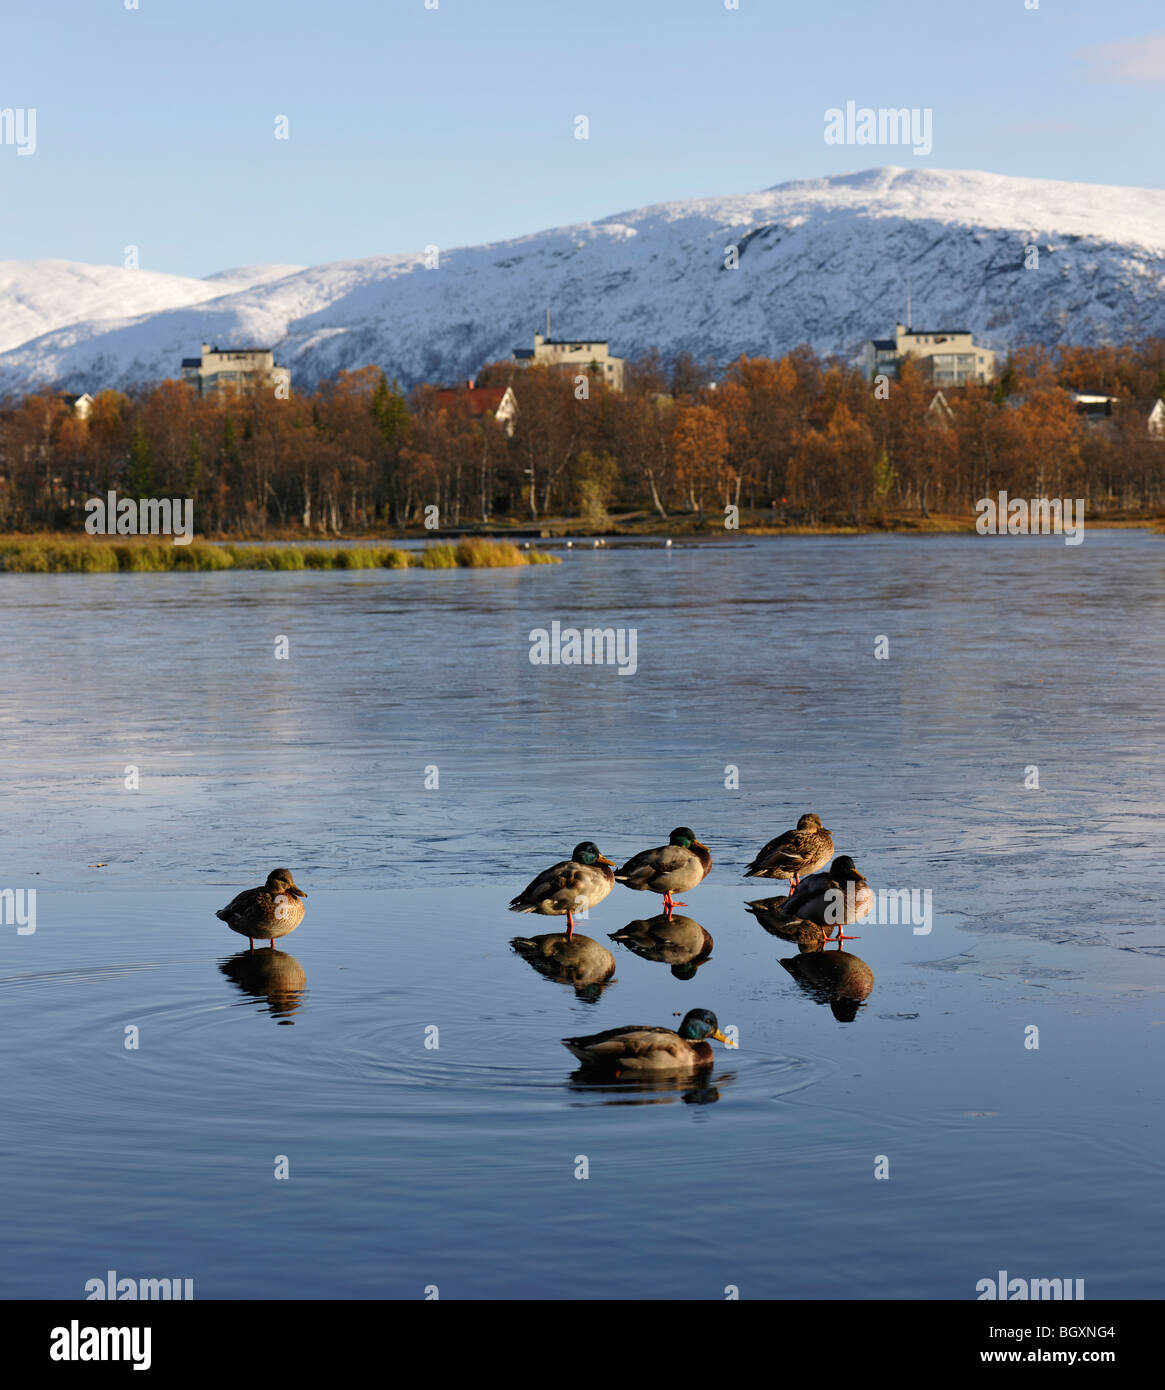 Mallard ducks on a thin surface of ice on a lake. Reflections, mirror images, of the birds. Tromso, North Norway Stock Photo